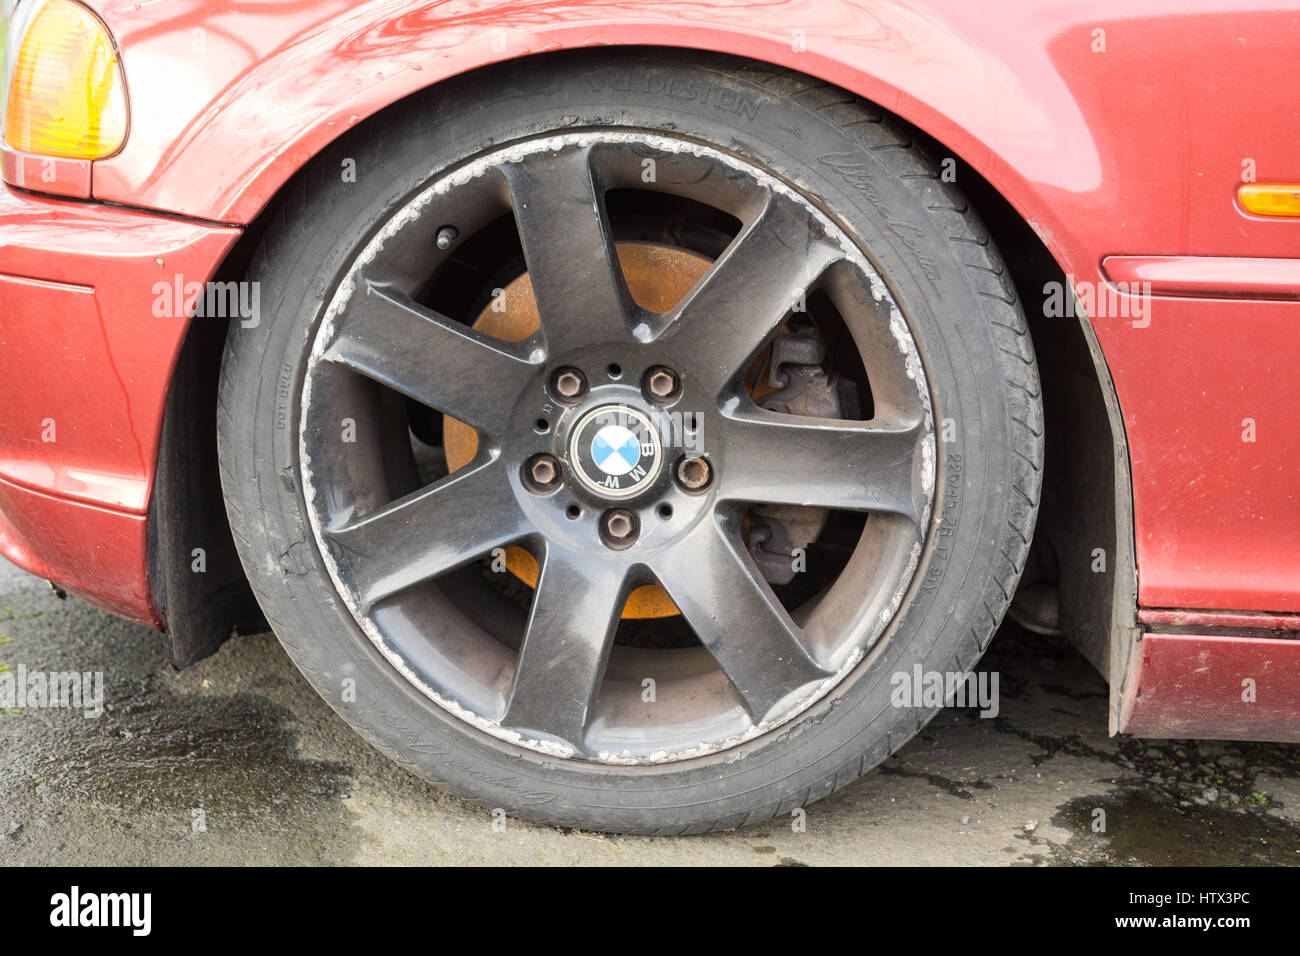 kerbing curbing damage to alloy wheels - Stock Image